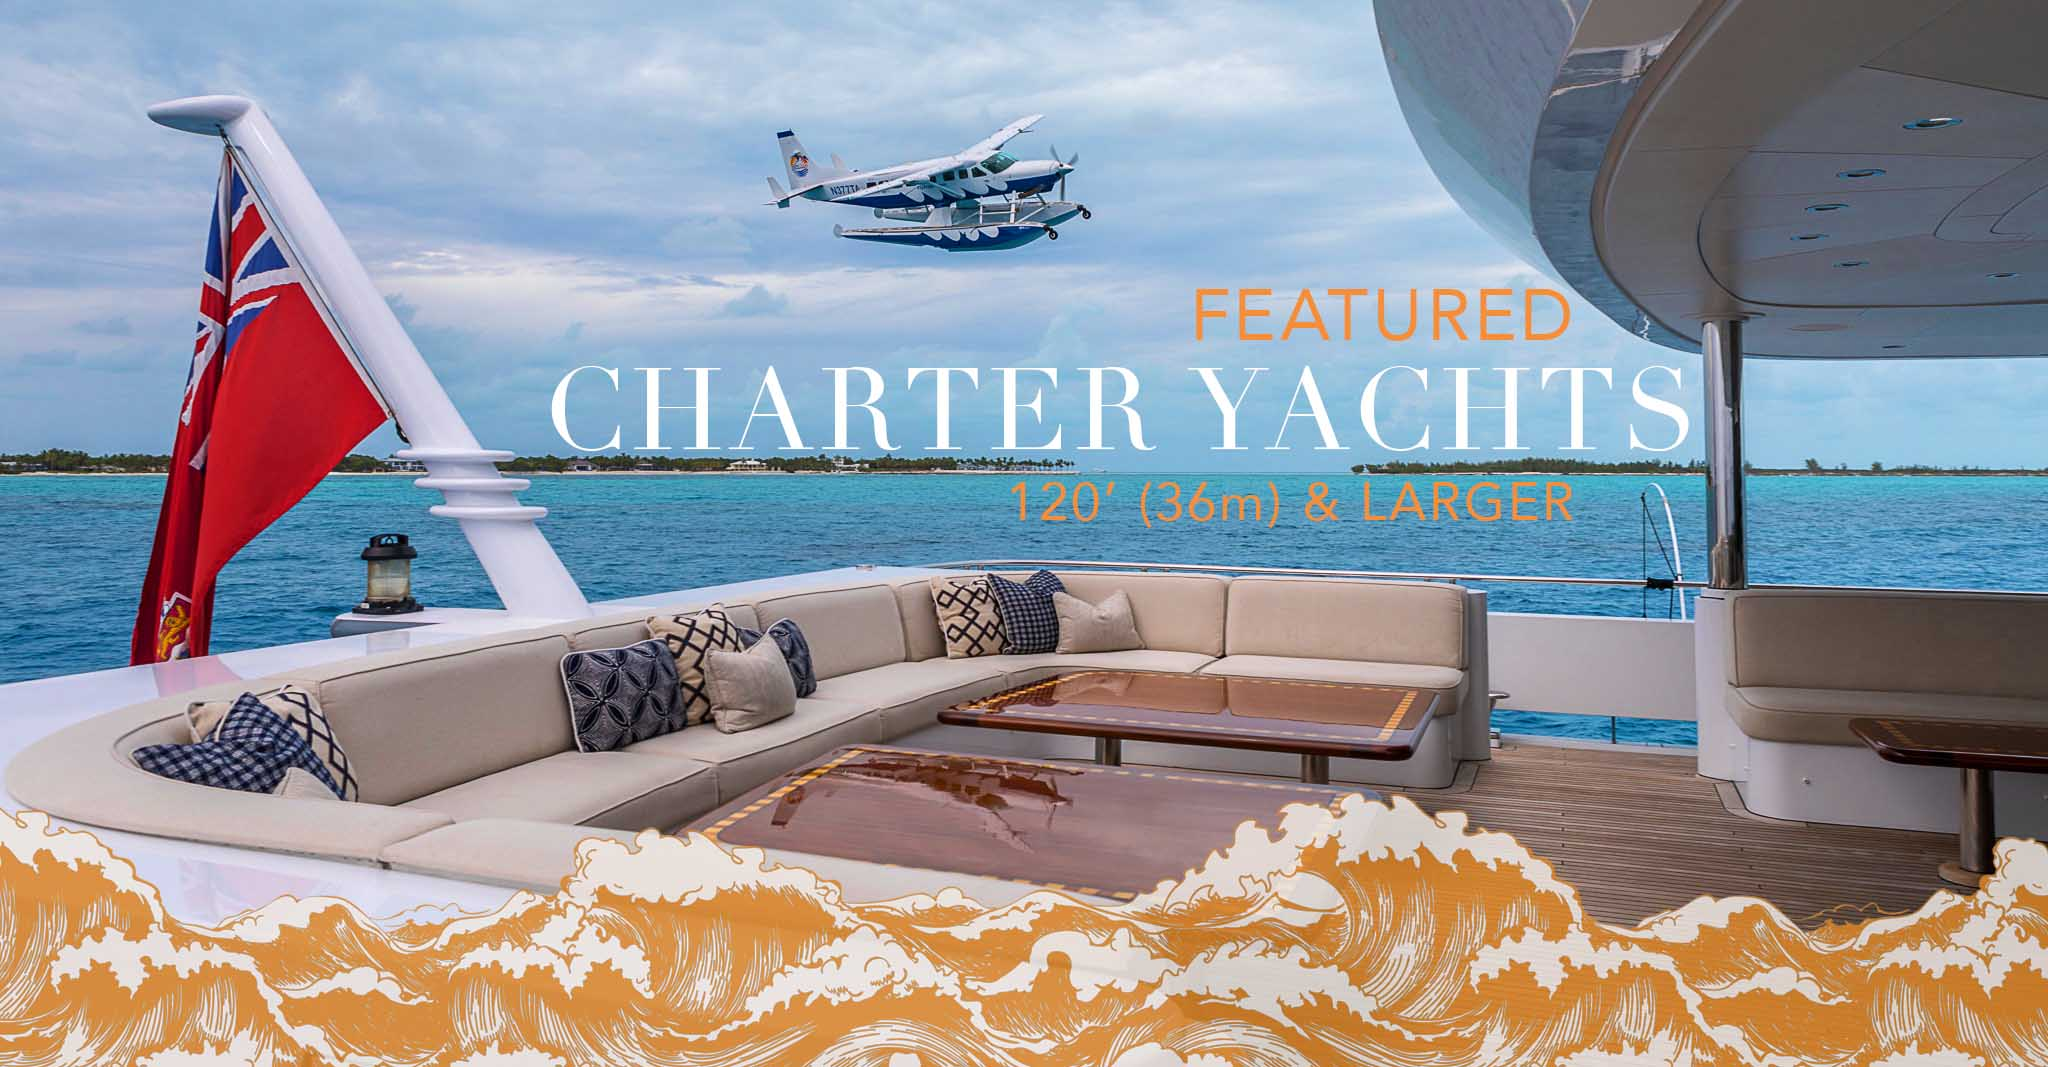 Featured Yachts for Charter over 120′